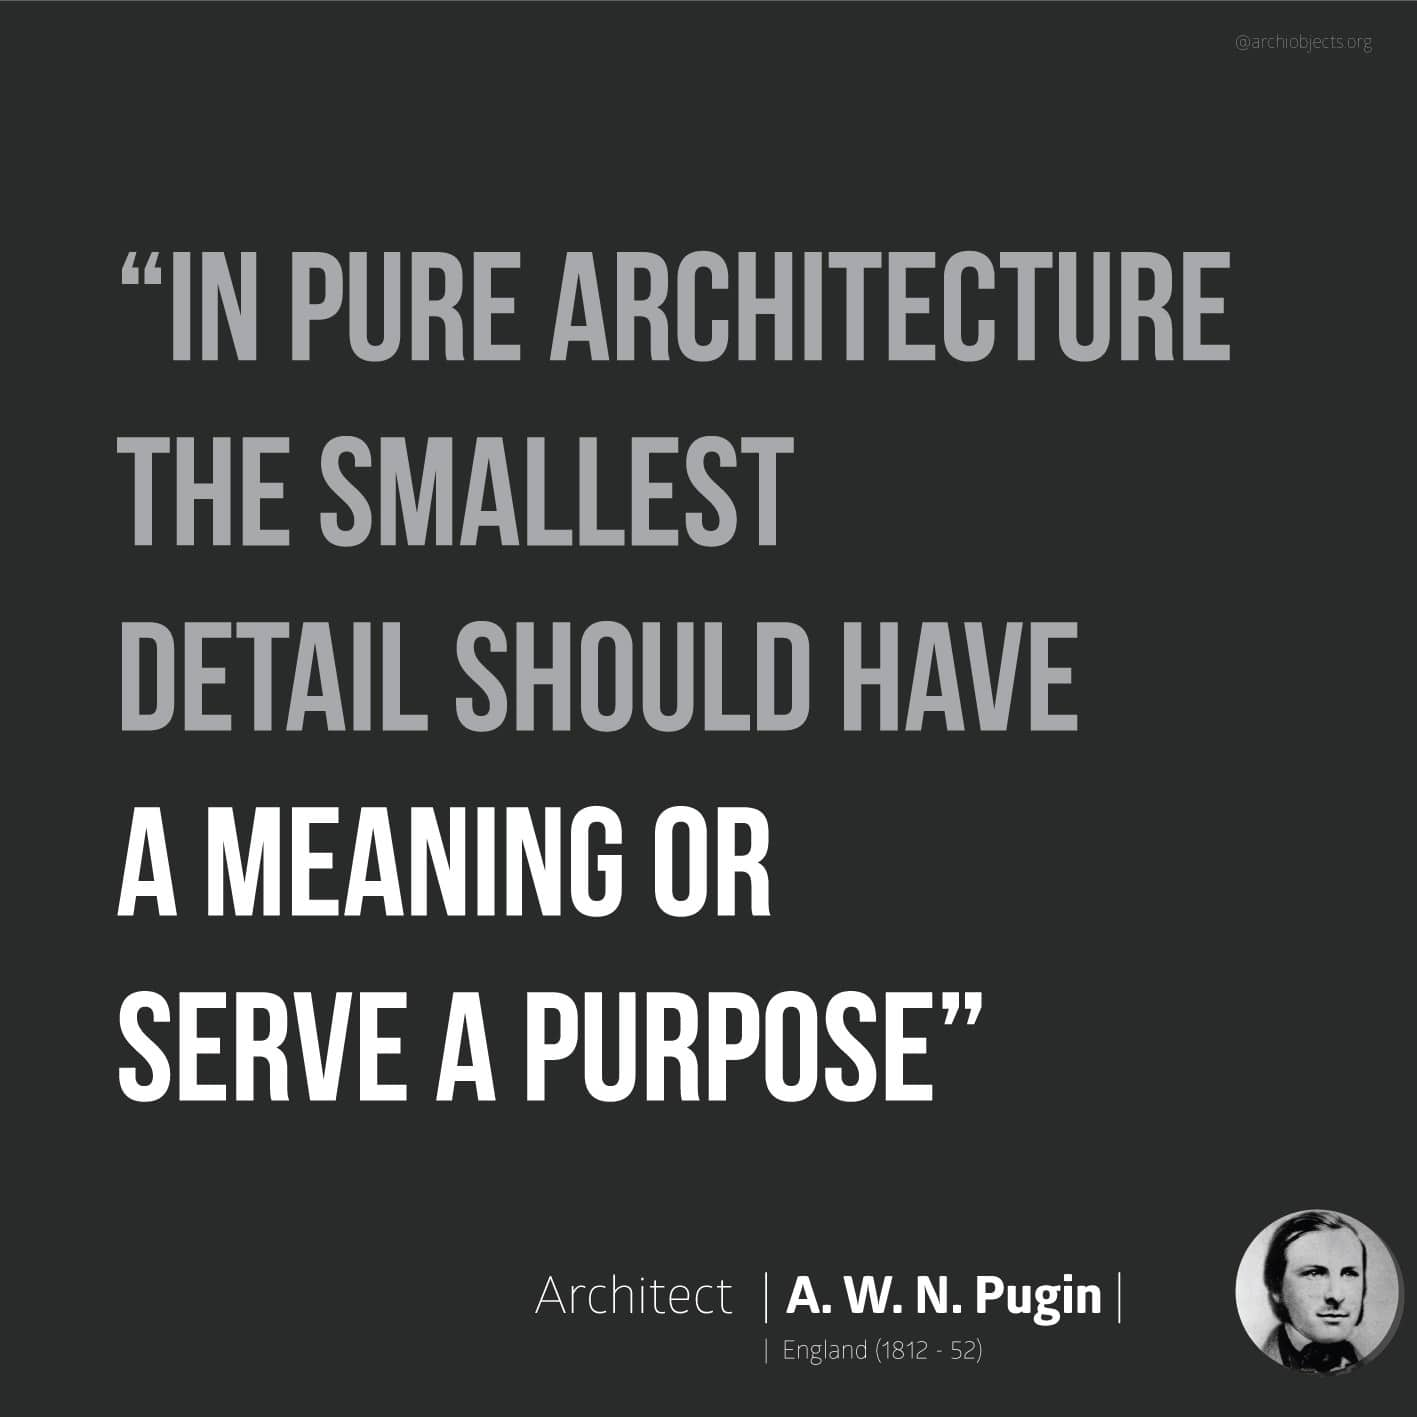 pugin quote Architectural Quotes - Worth spreading Architects' voice